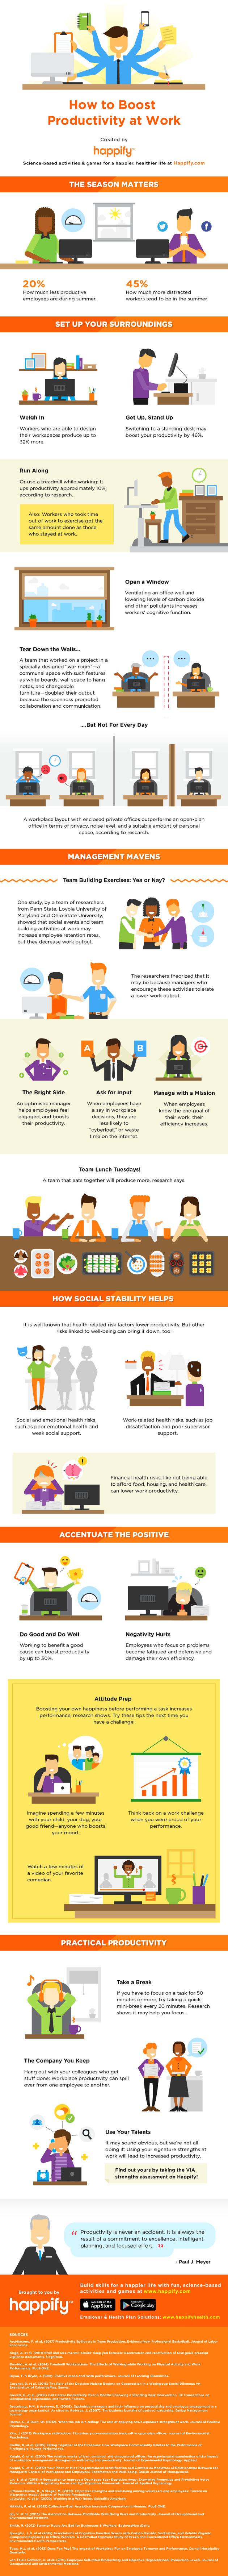 How to Boost Your Productivity at Work